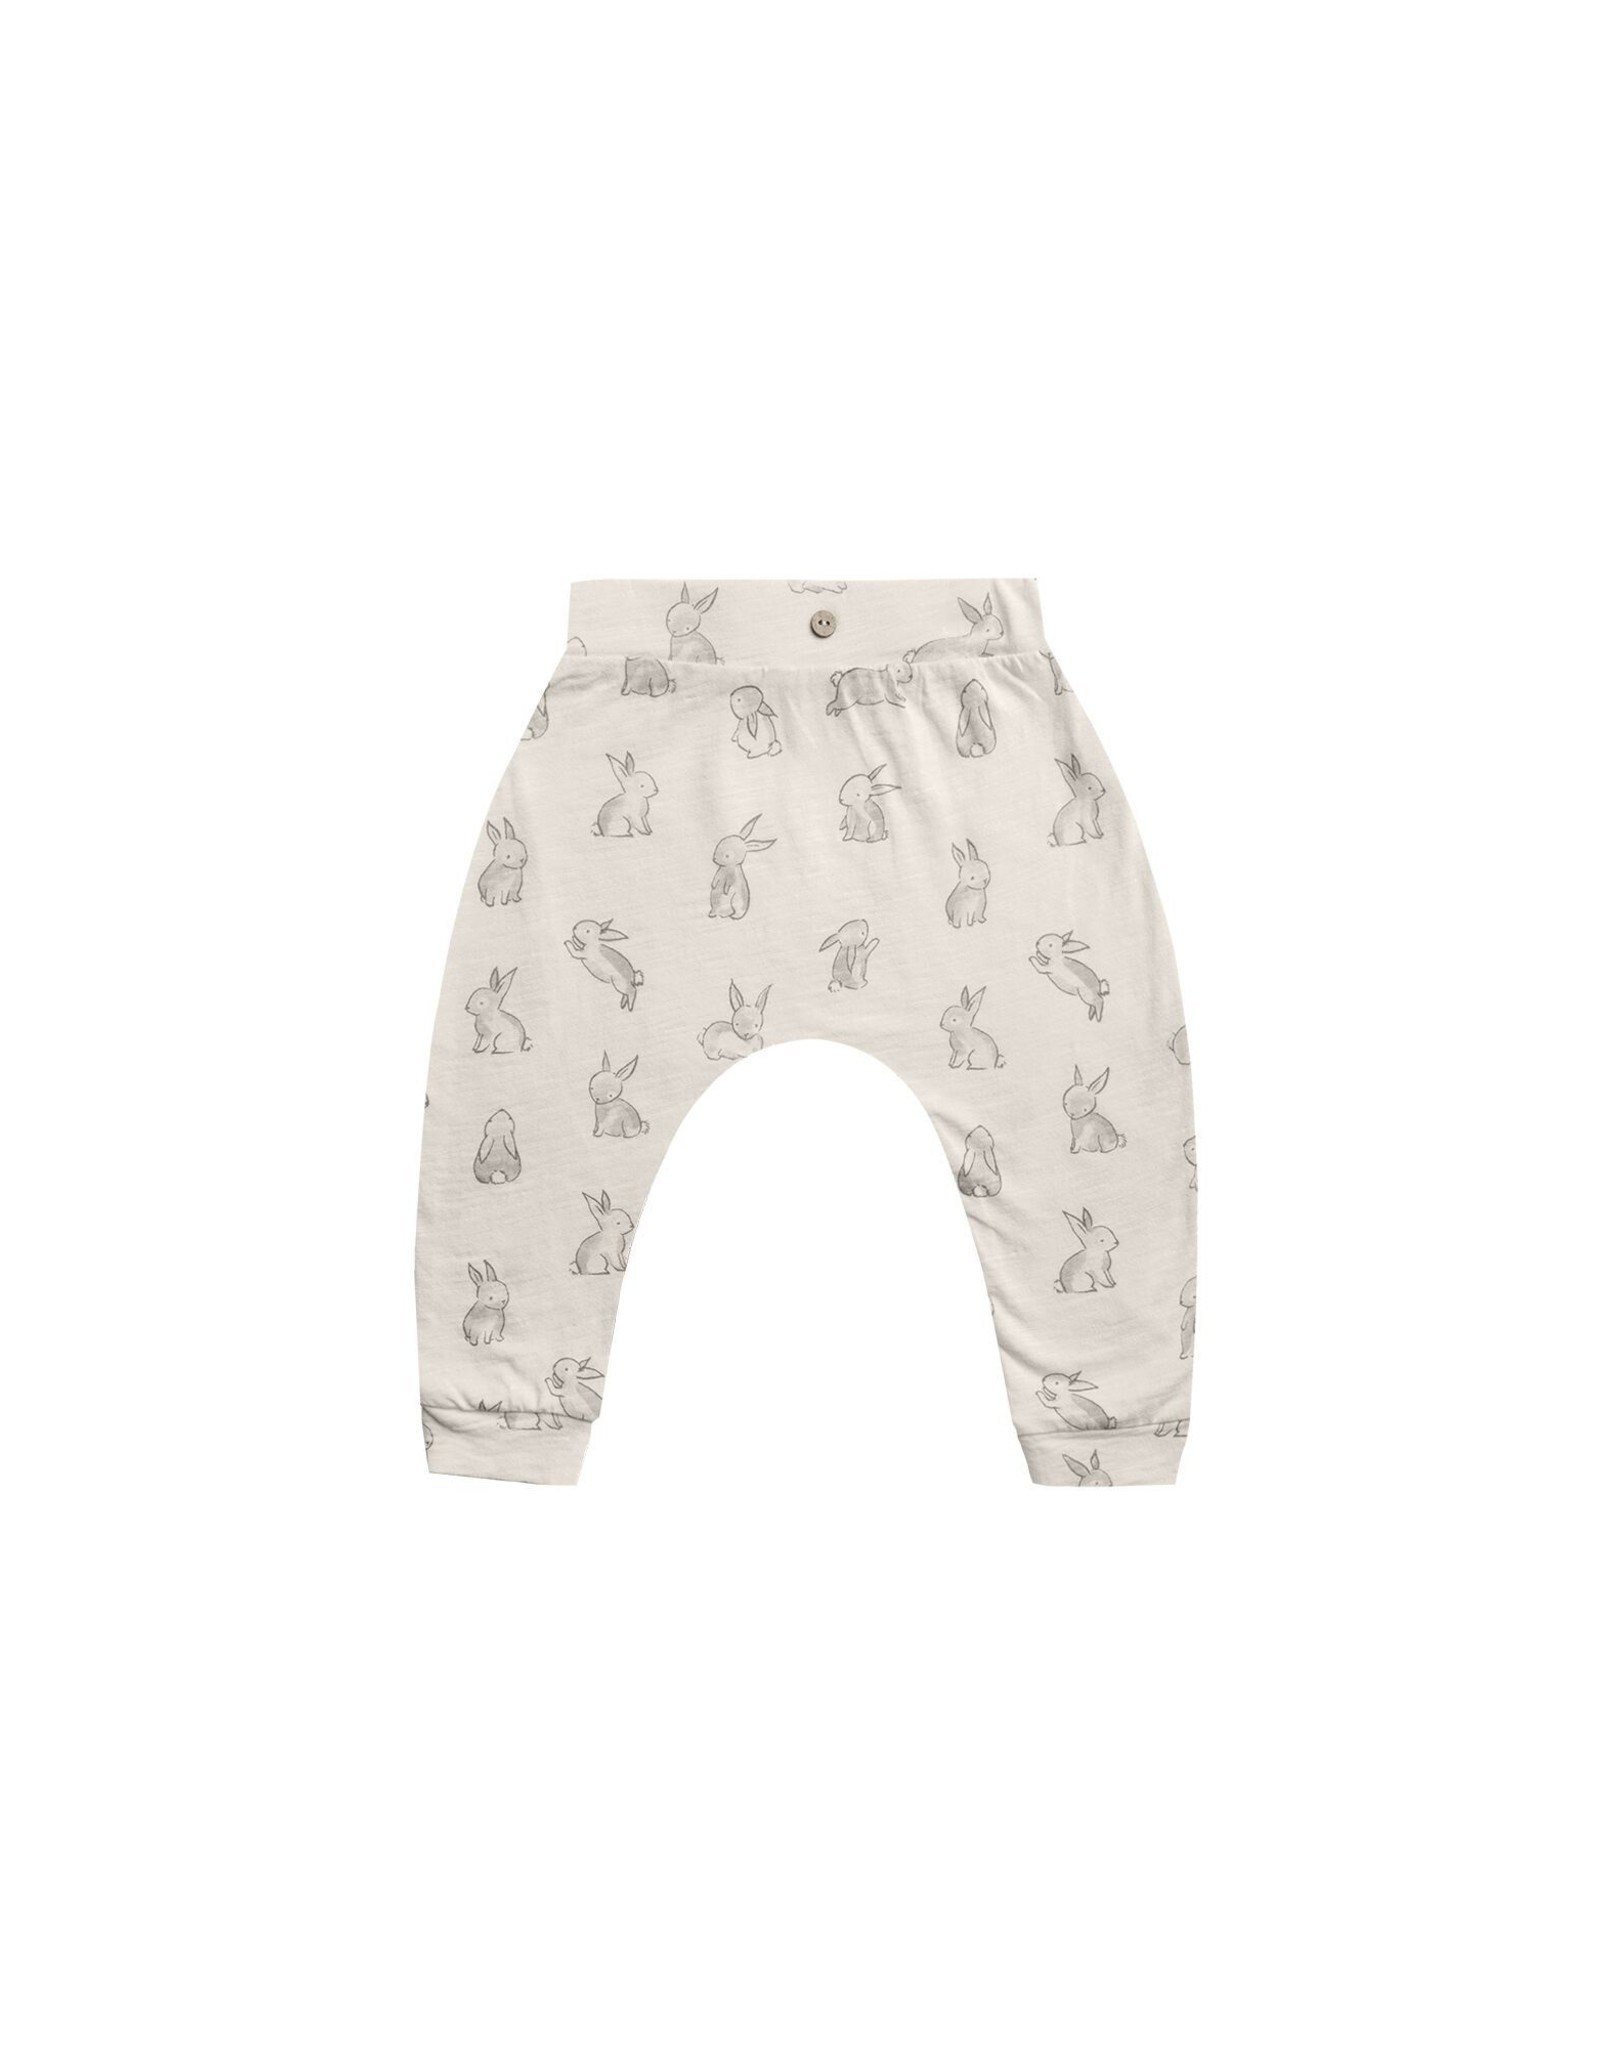 Rylee and Cru bunnies slouch pant